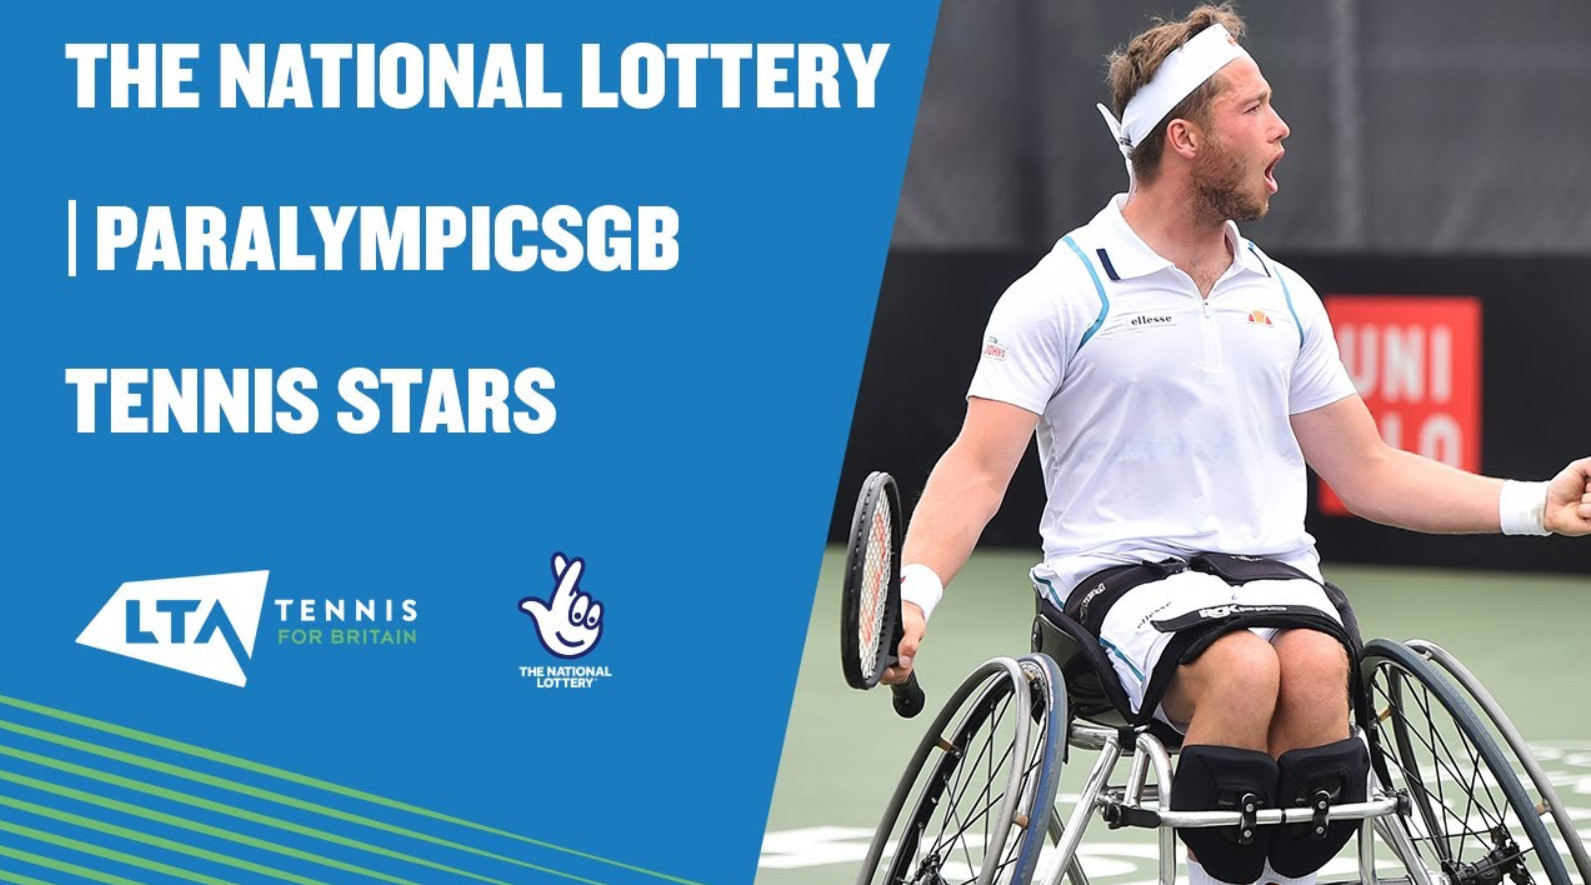 Lta and the national lottery champion paralympicsgb athletes ahead of tokyo games